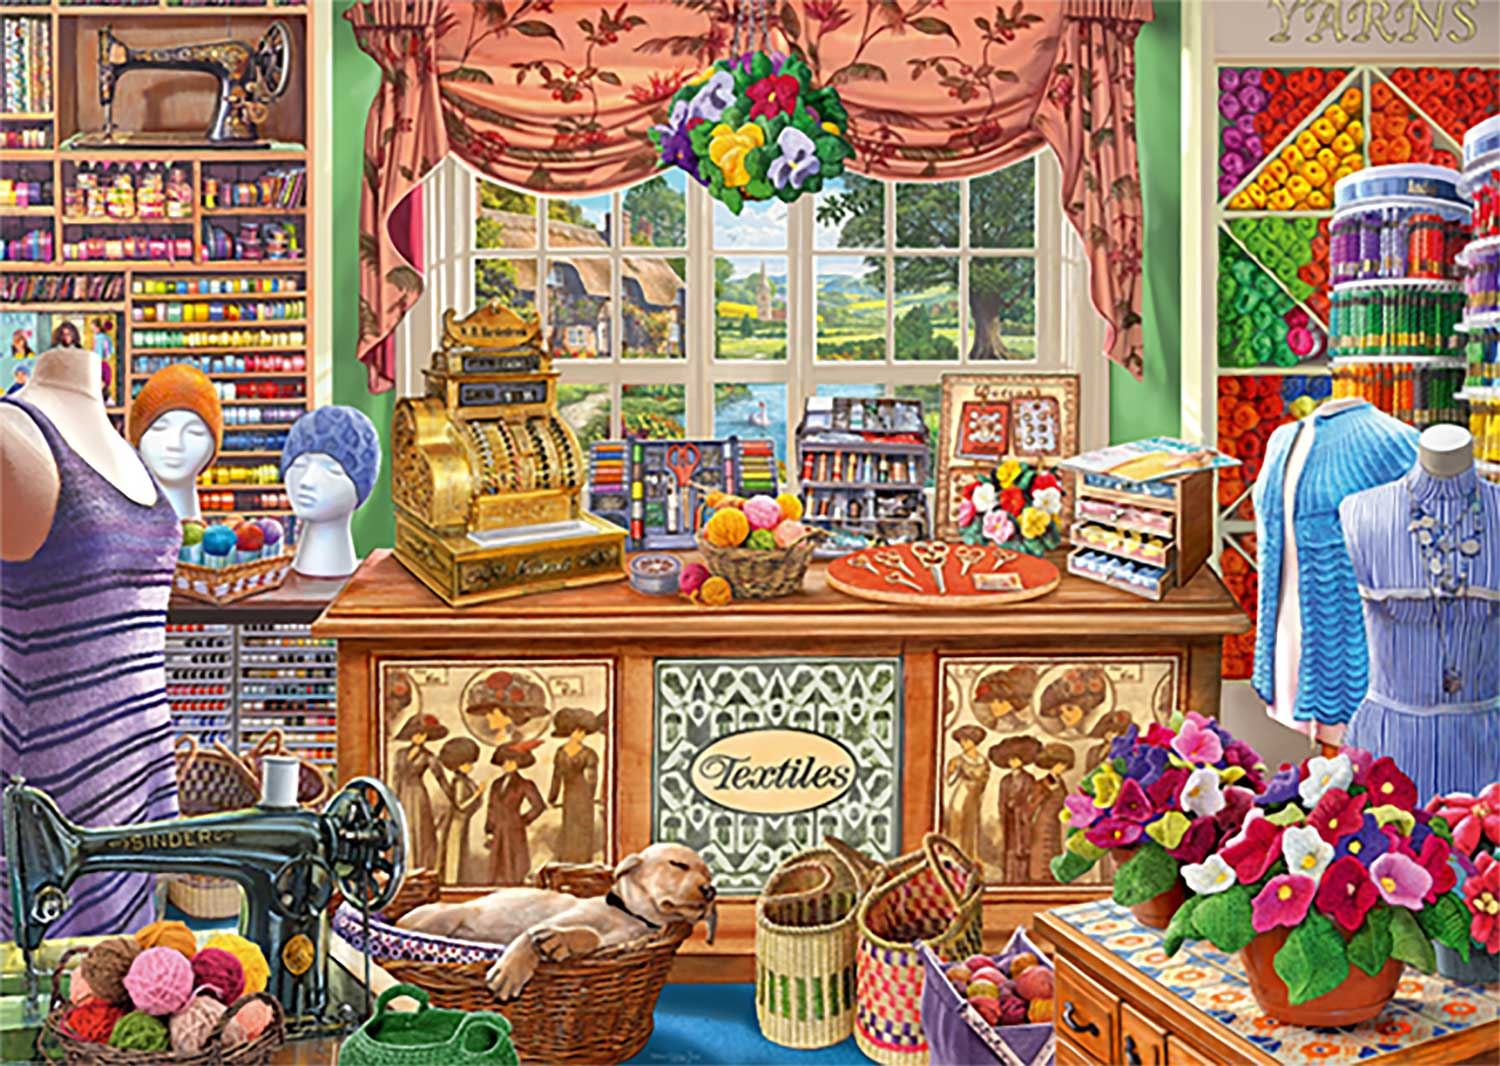 Falcon Deluxe The Haberdashers Shoppe Jigsaw Puzzle (1000 Pieces)